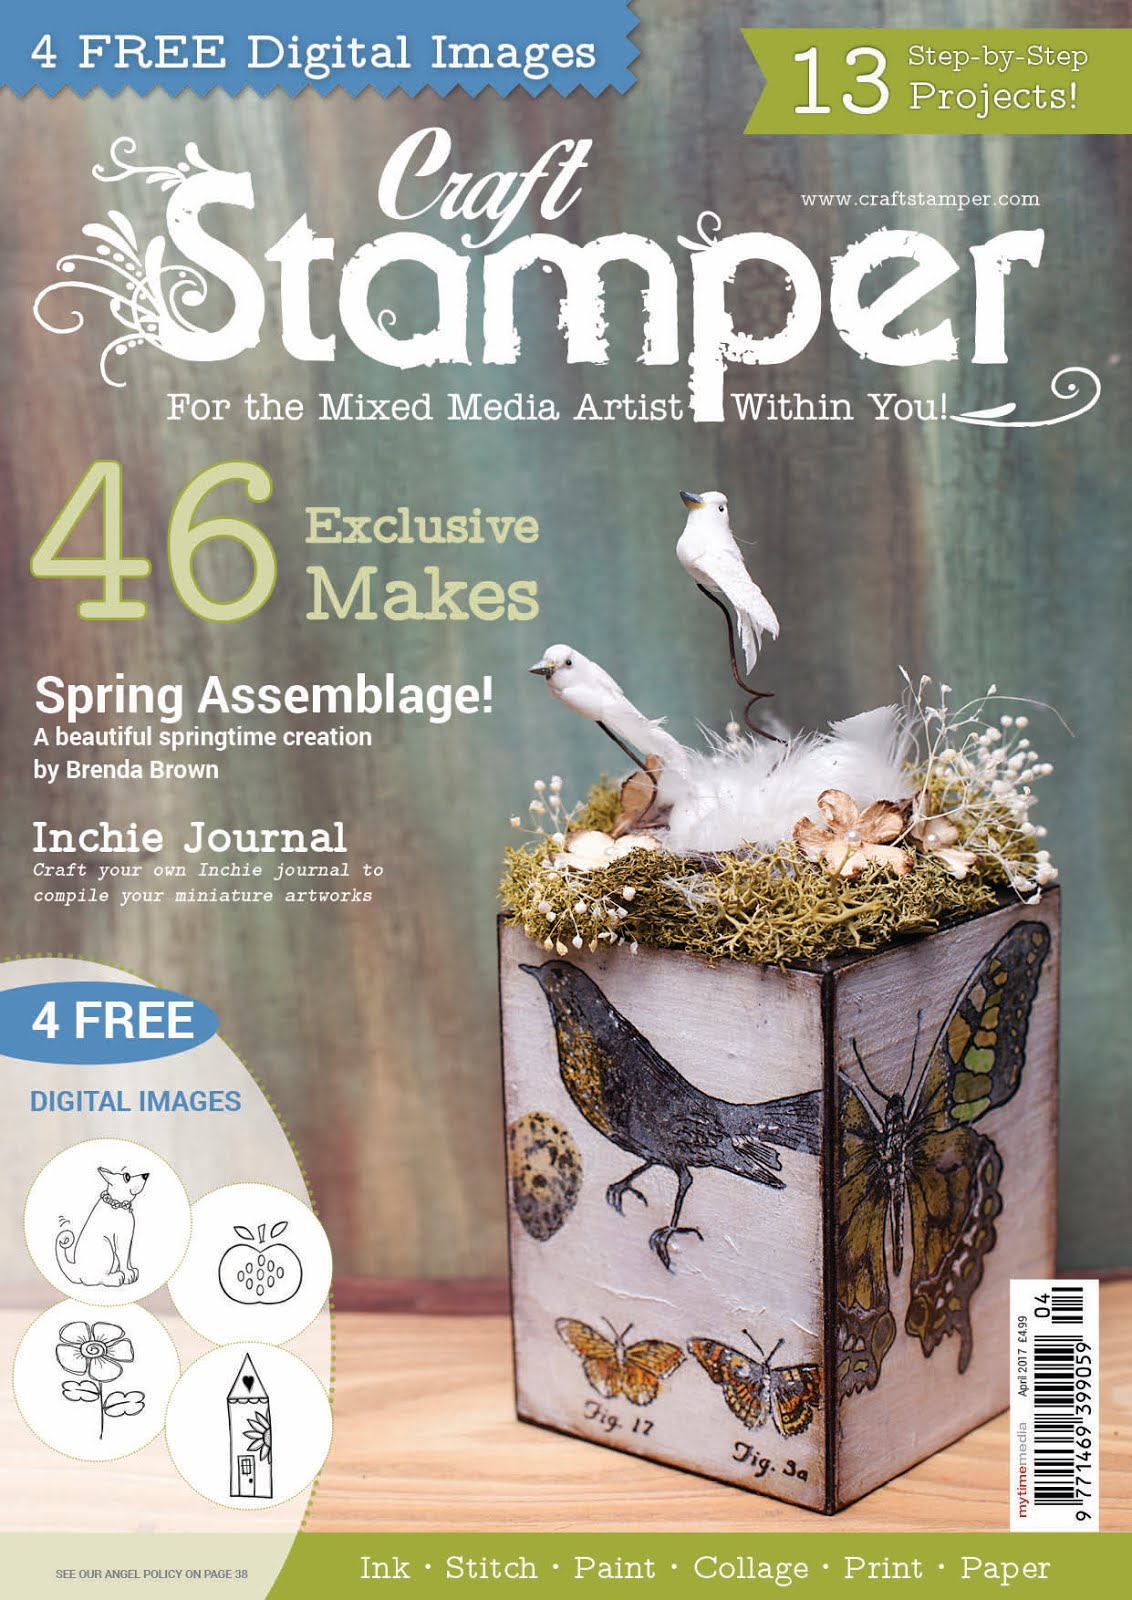 Published in Craft Stamper April 2017